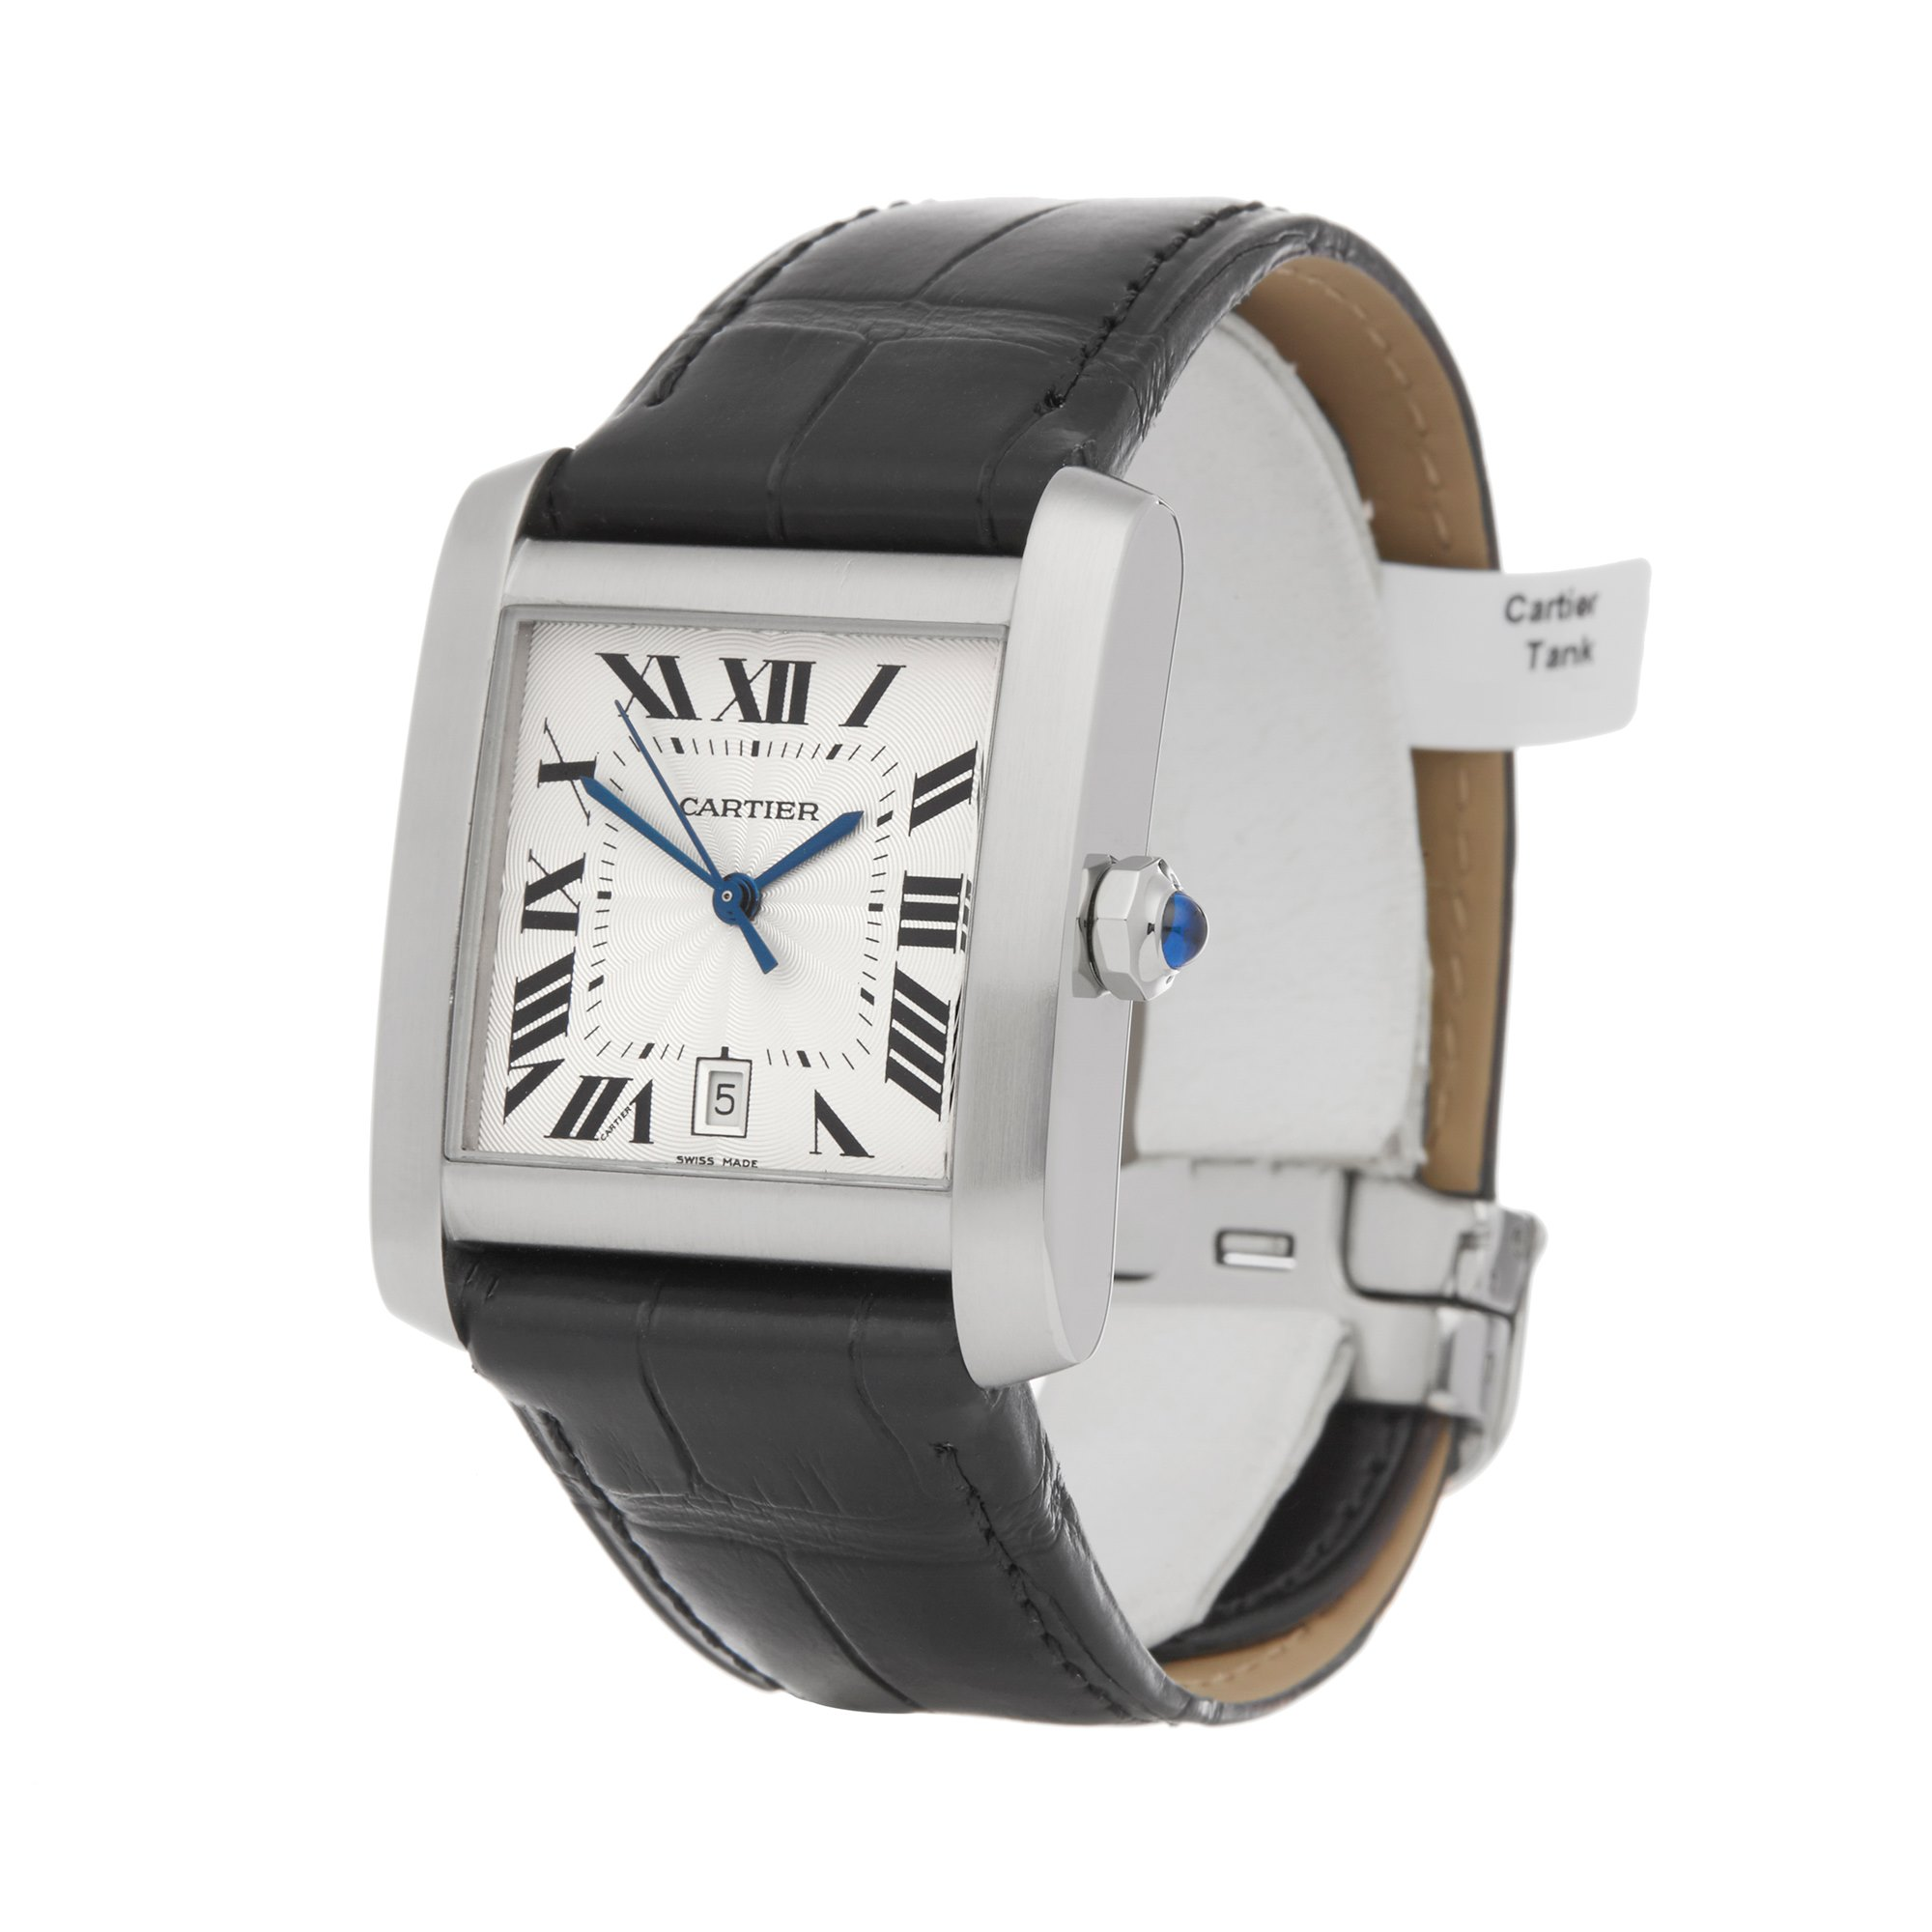 Lot 9 - Cartier Tank Francaise 2564 or W5101755 Men Stainless Steel Watch